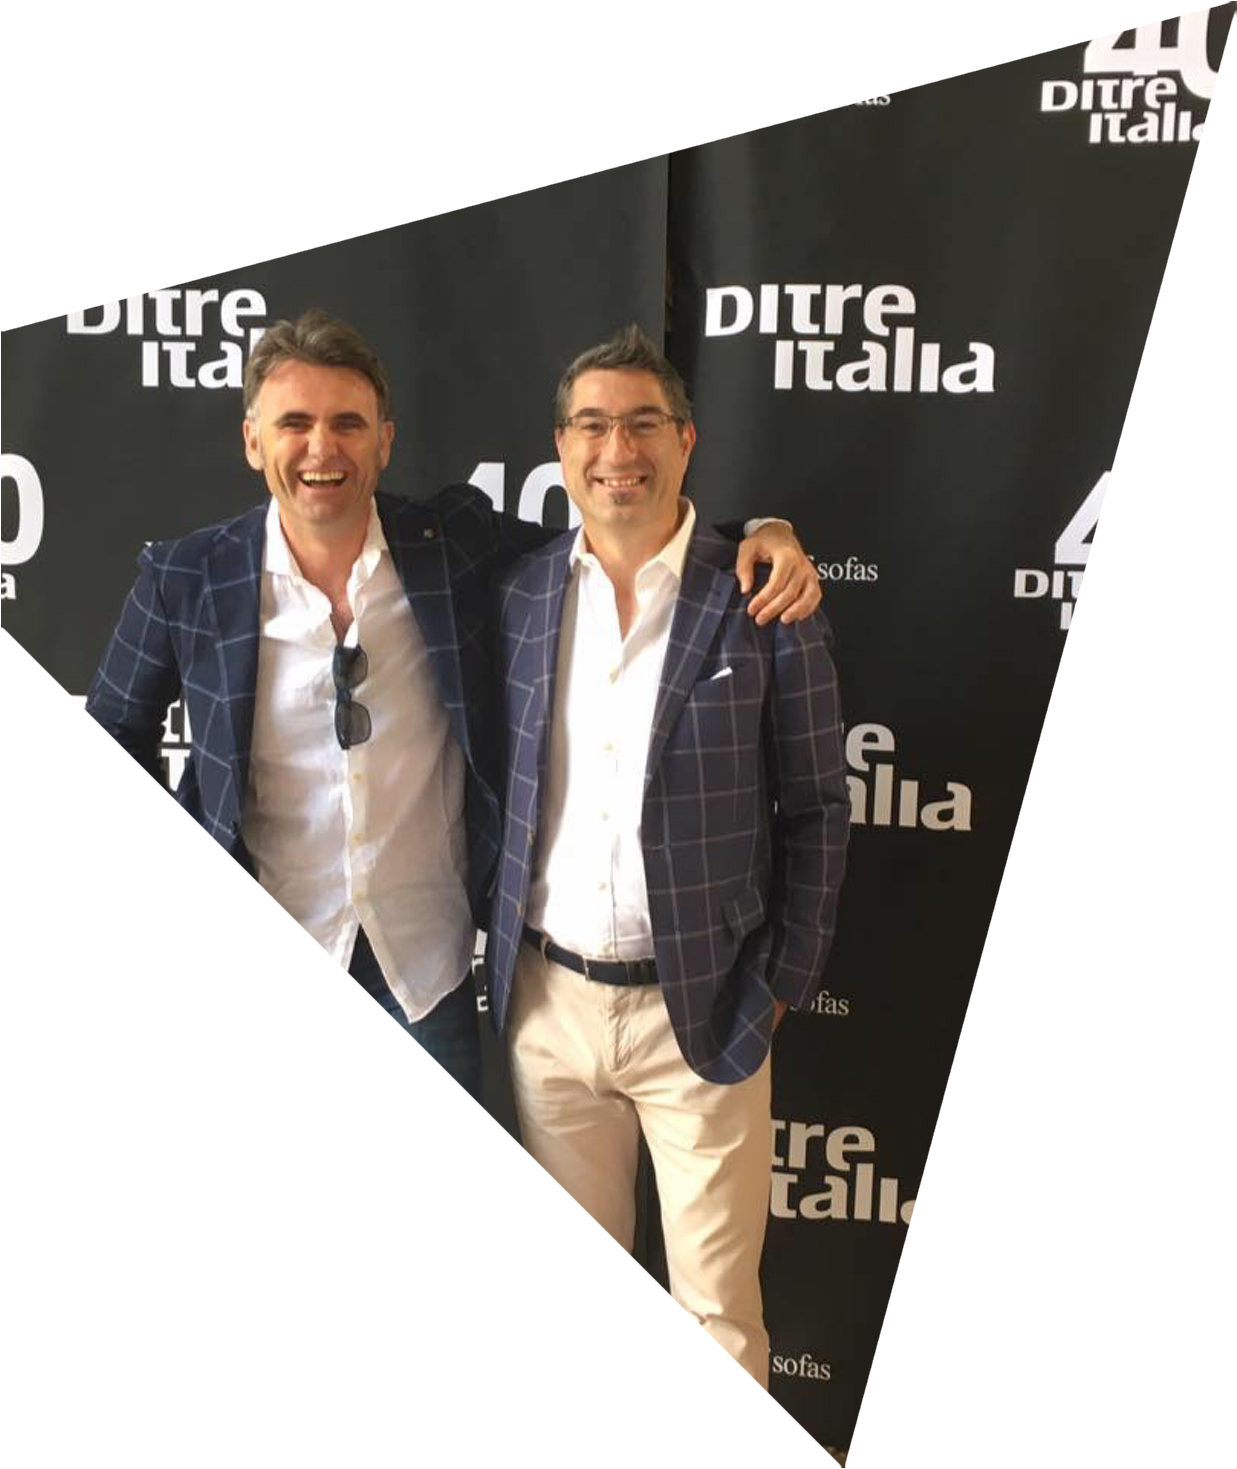 https://www.dacosta.it/wp/wp-content/uploads/2020/08/luca-paolo-2.png